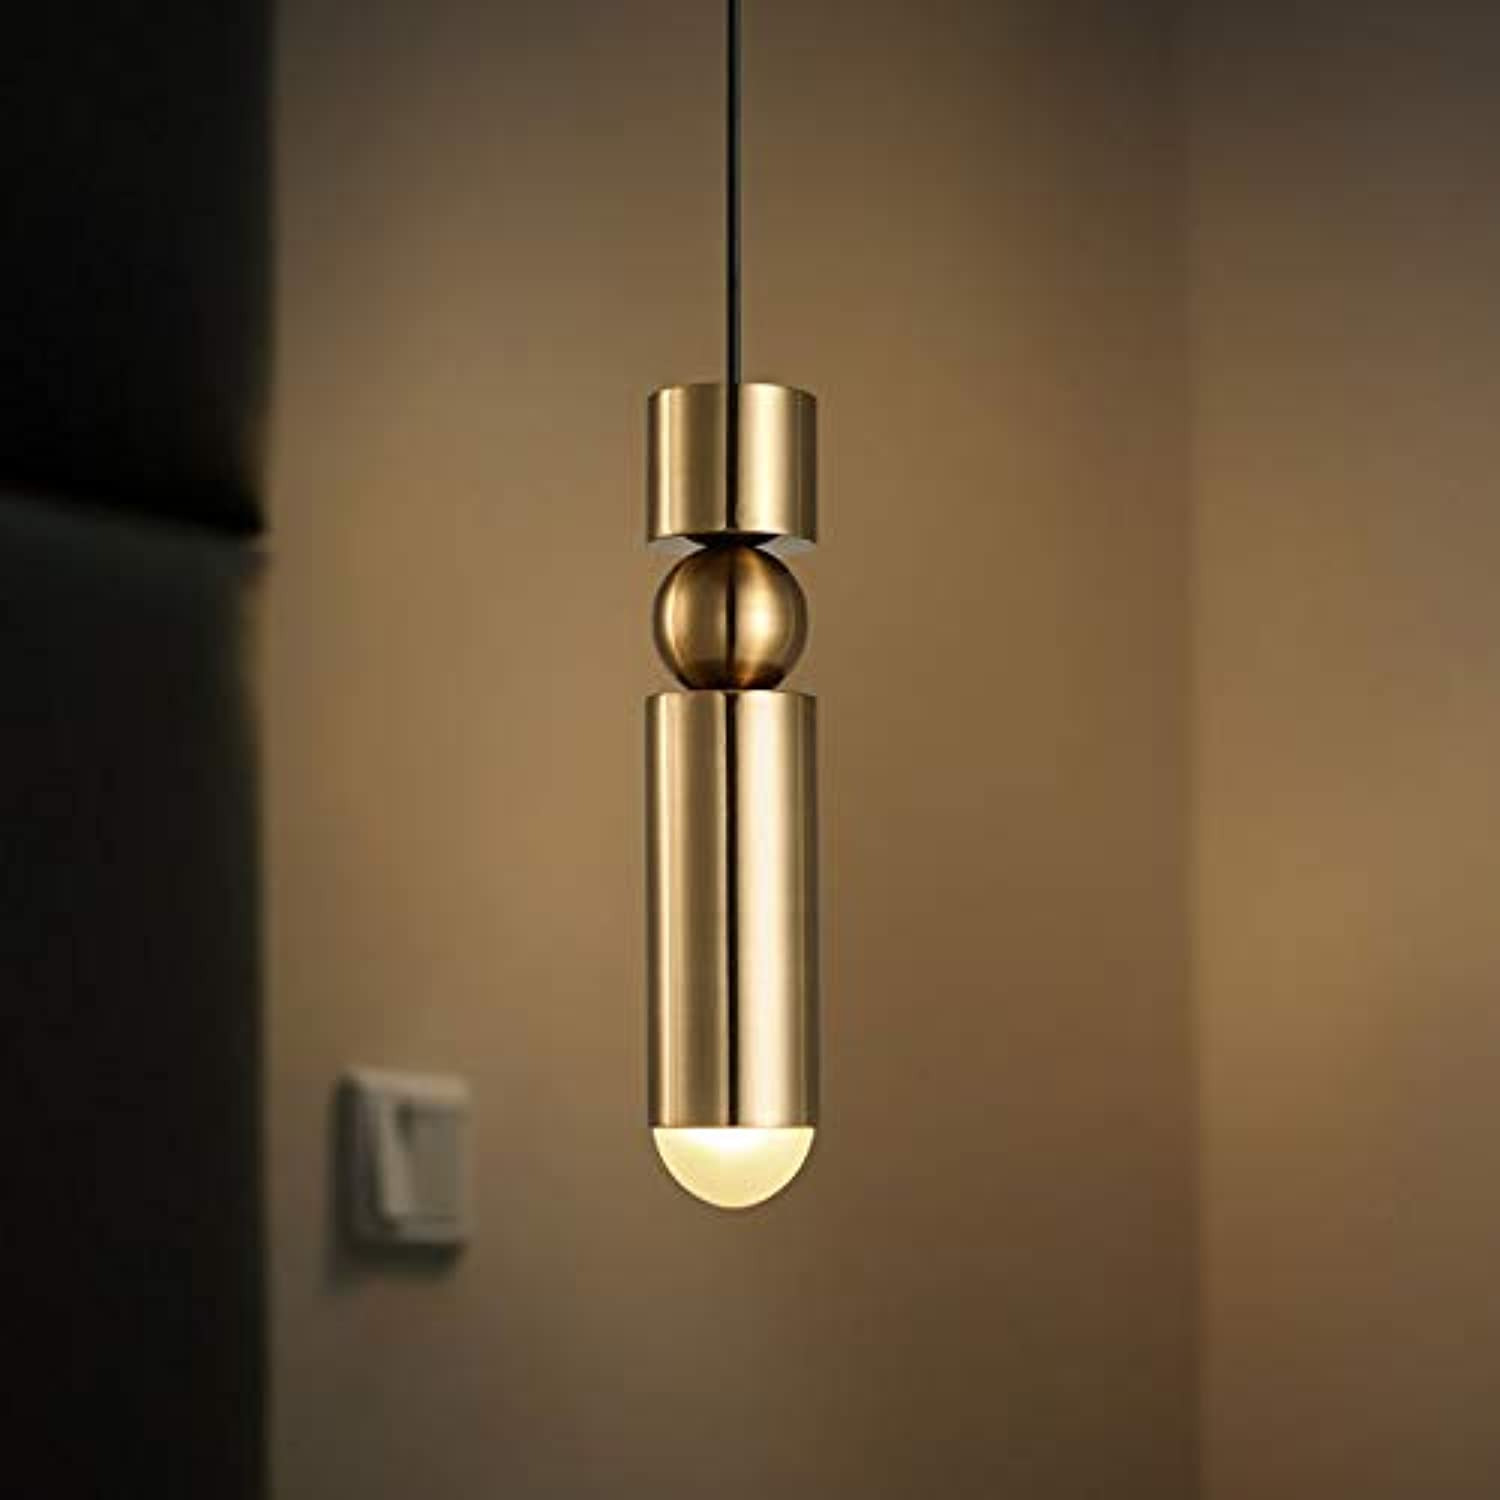 Jiuzhuo Contemporary Minimalist Mini Cylinder and Globe Metal&Acrylic Single Light Pendant Lighting Hanging Ceiling Fixture in gold